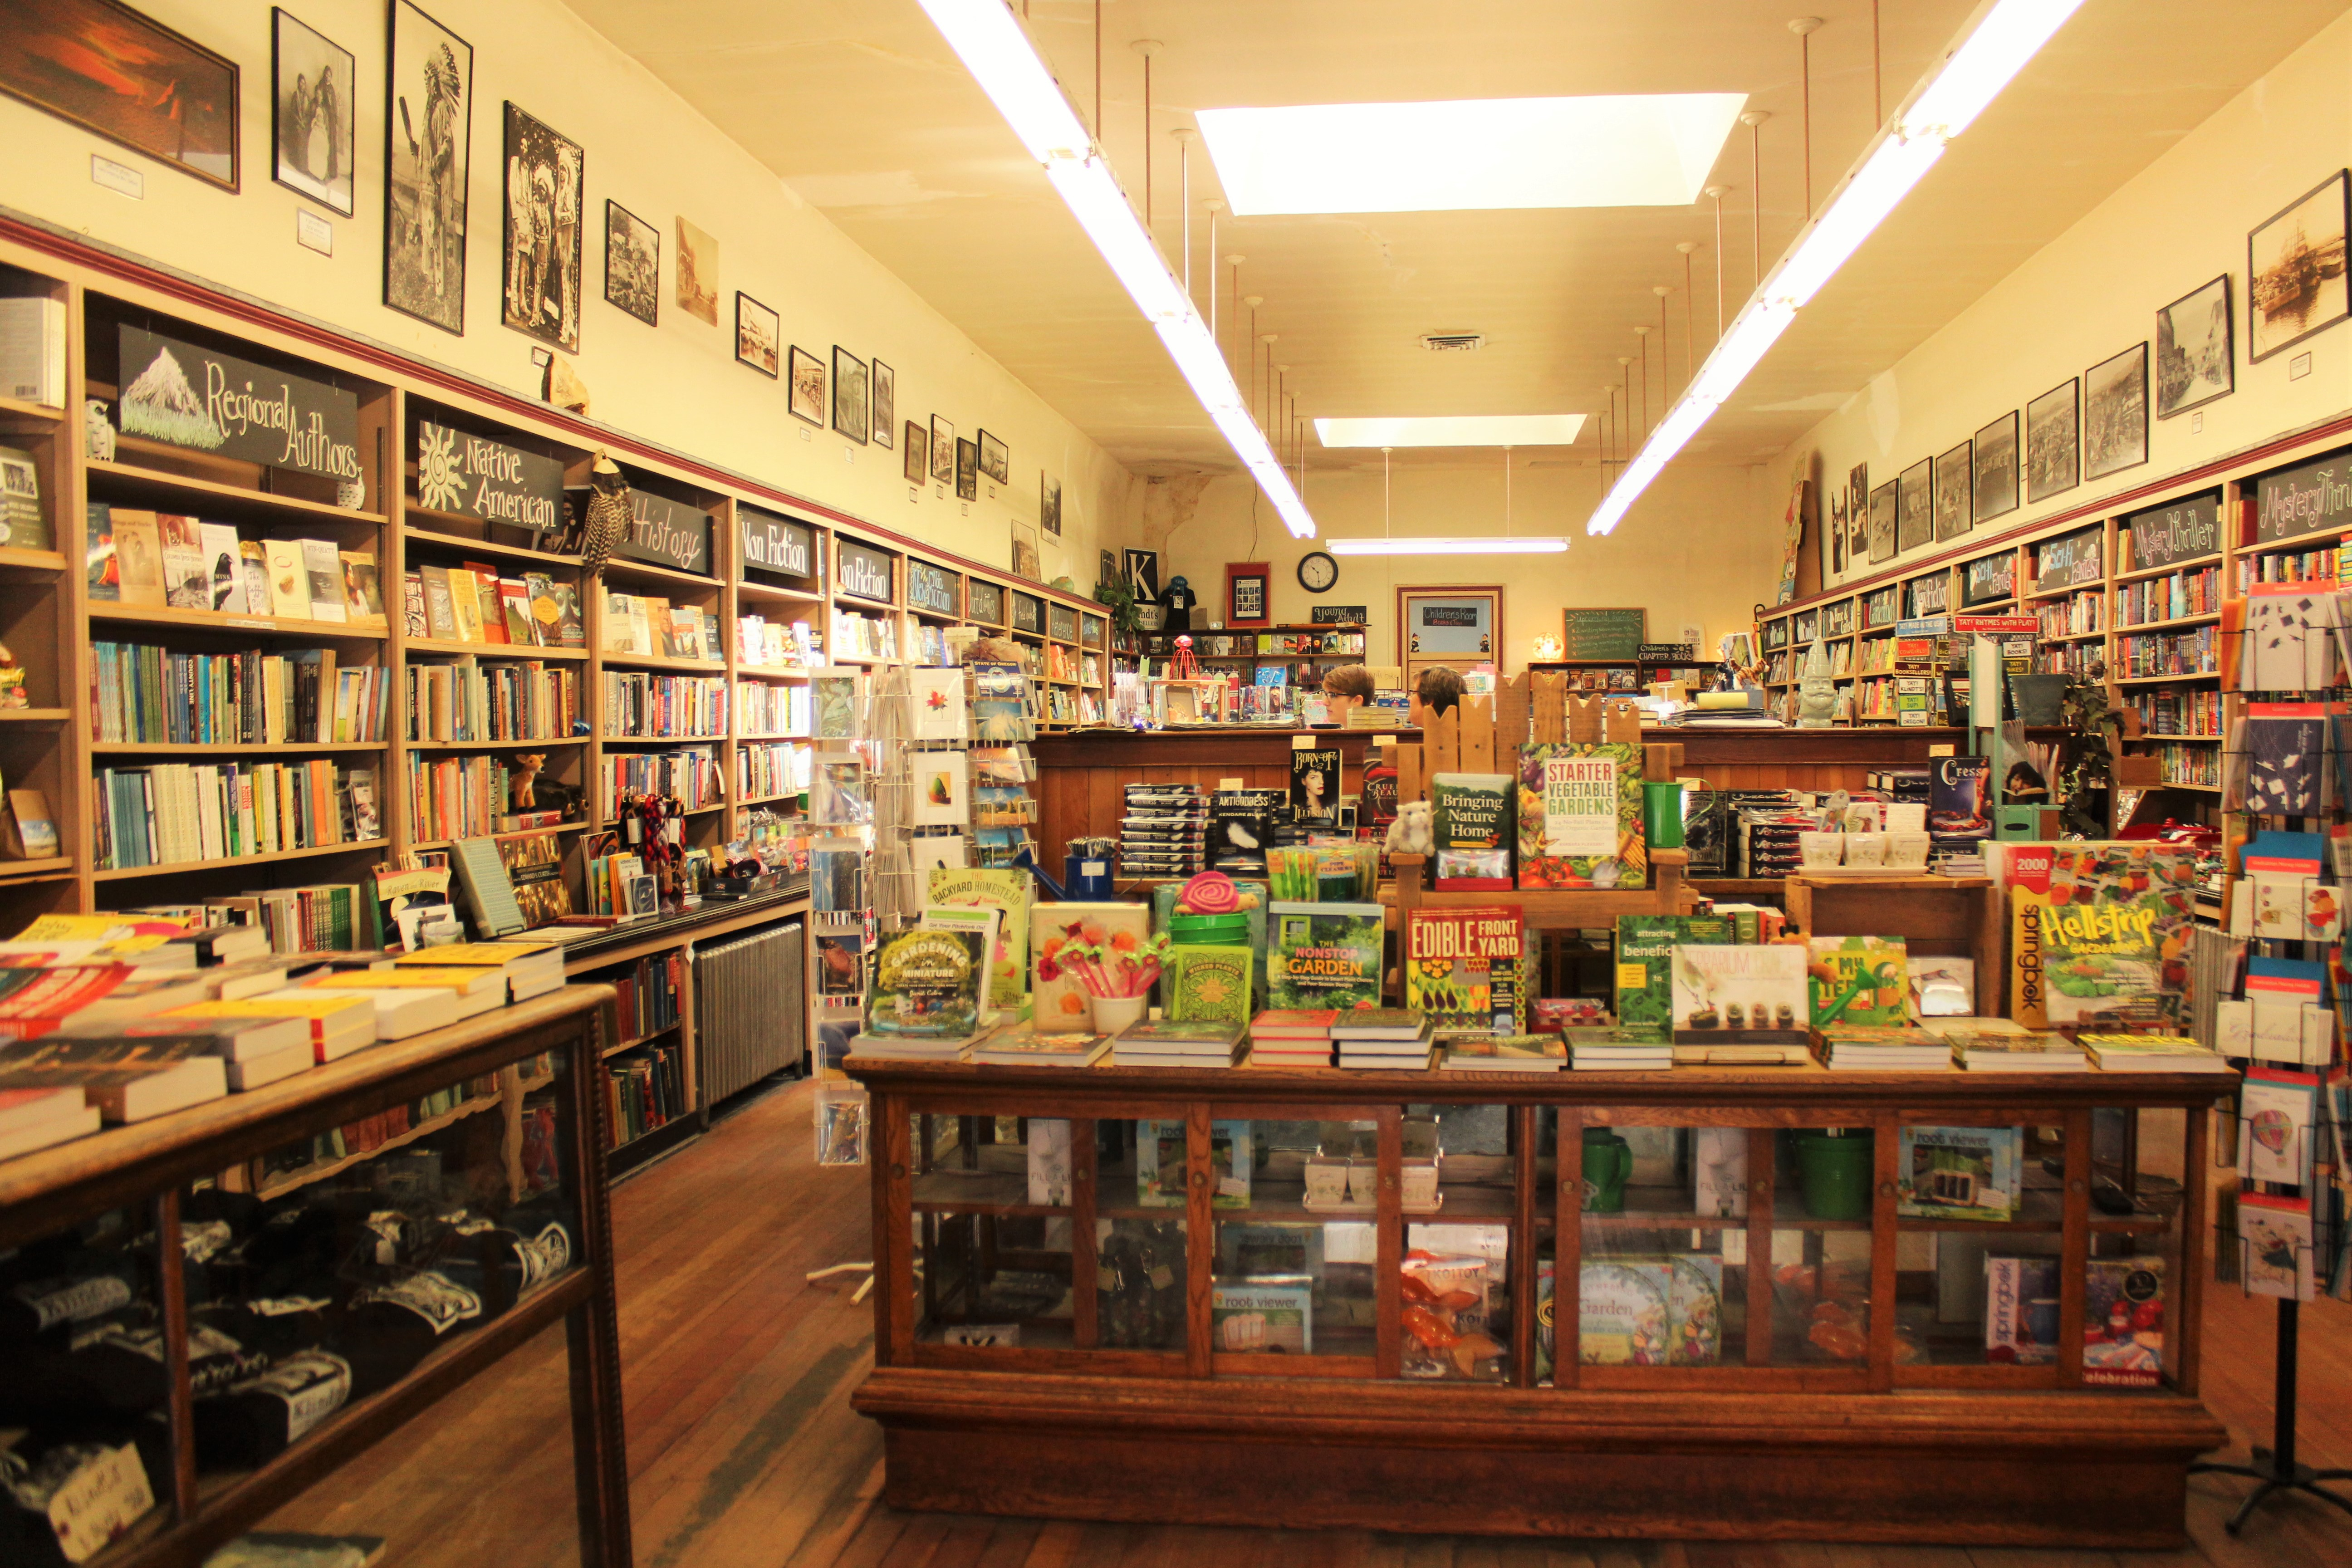 Klindts Booksellers, photo by Carrie Uffindell